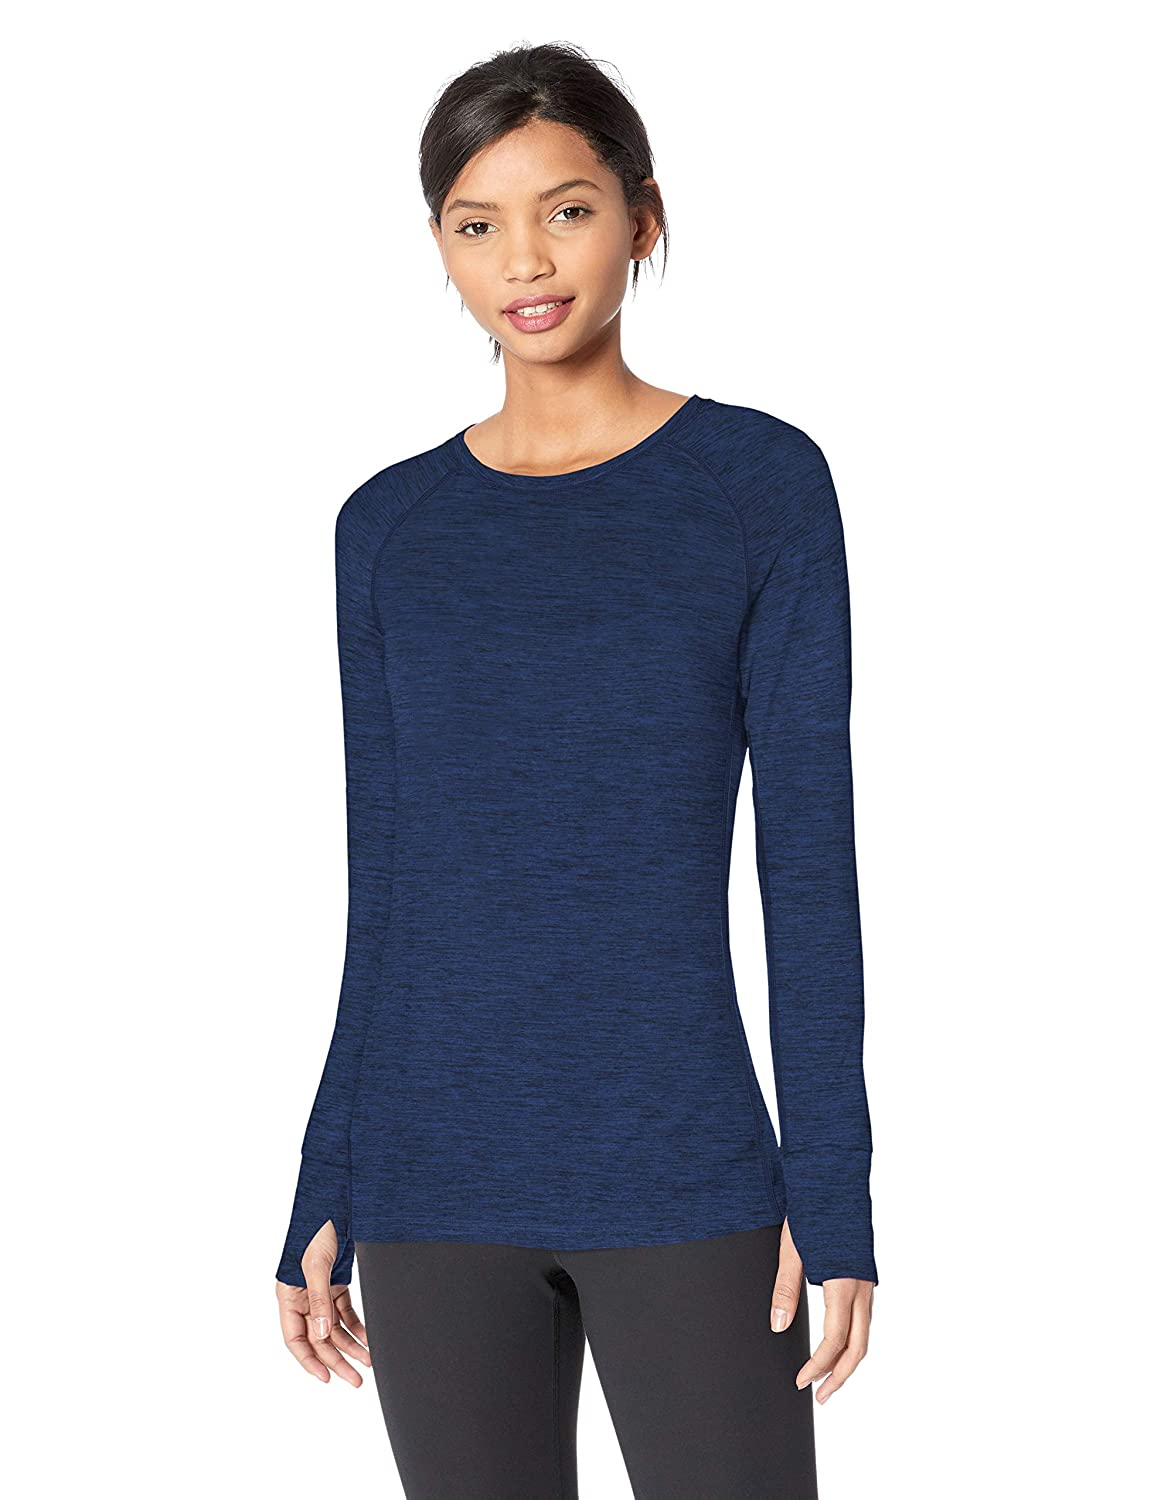 Essentials Womens Brushed Tech Stretch Long-Sleeve Crew